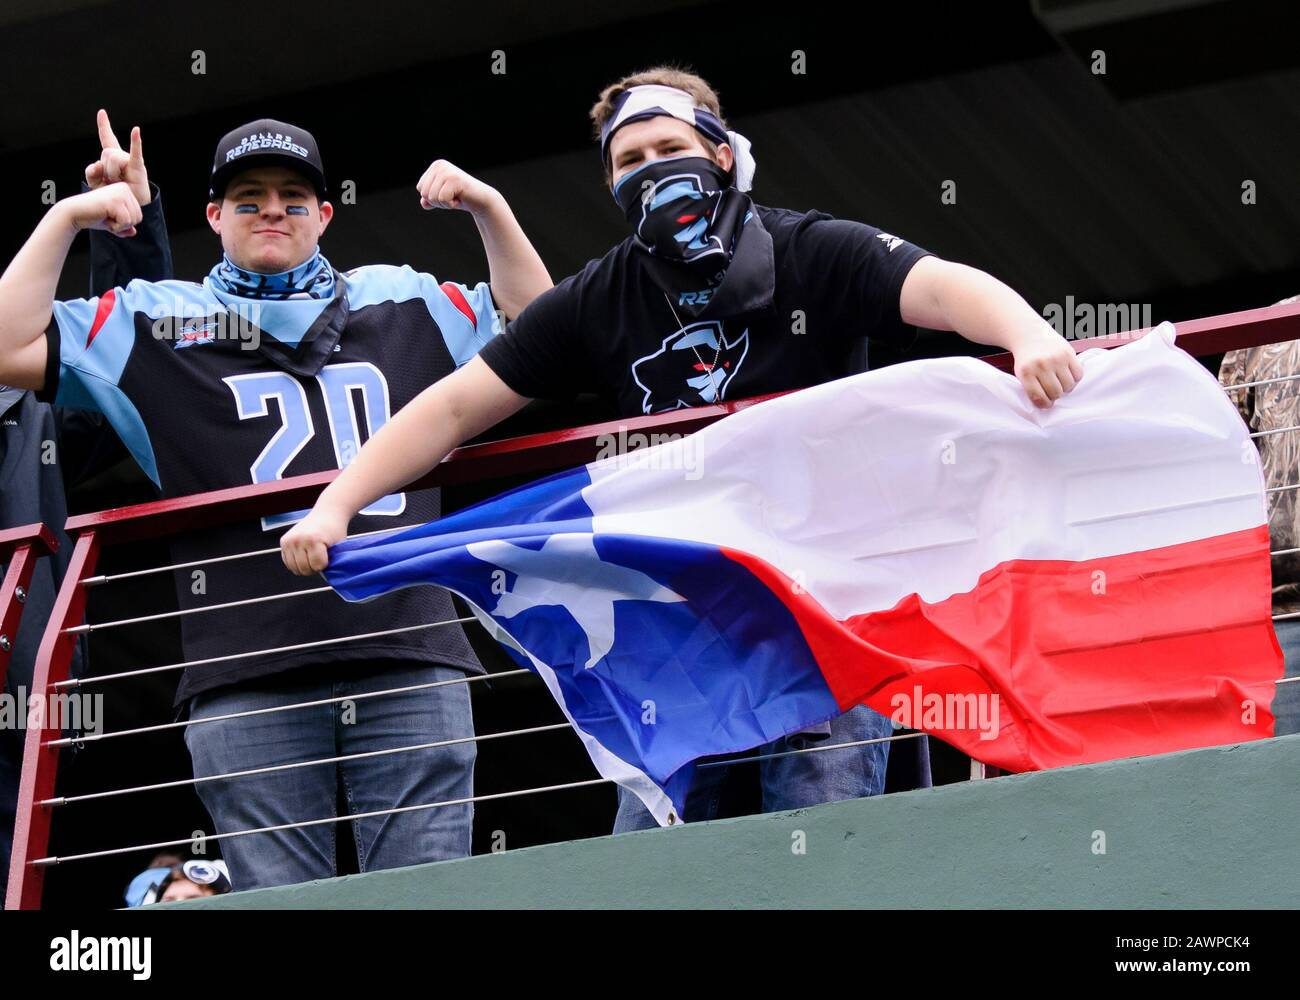 Arlington, Texas, USA. 9th Feb, 2020. Dallas Renegades fans before the 1st half of the XFL game between St. Louis Battlehawks and the Dallas Renegades at Globe Life Park in Arlington, Texas. Credit: Cal Sport Media/Alamy Live News Stock Photo